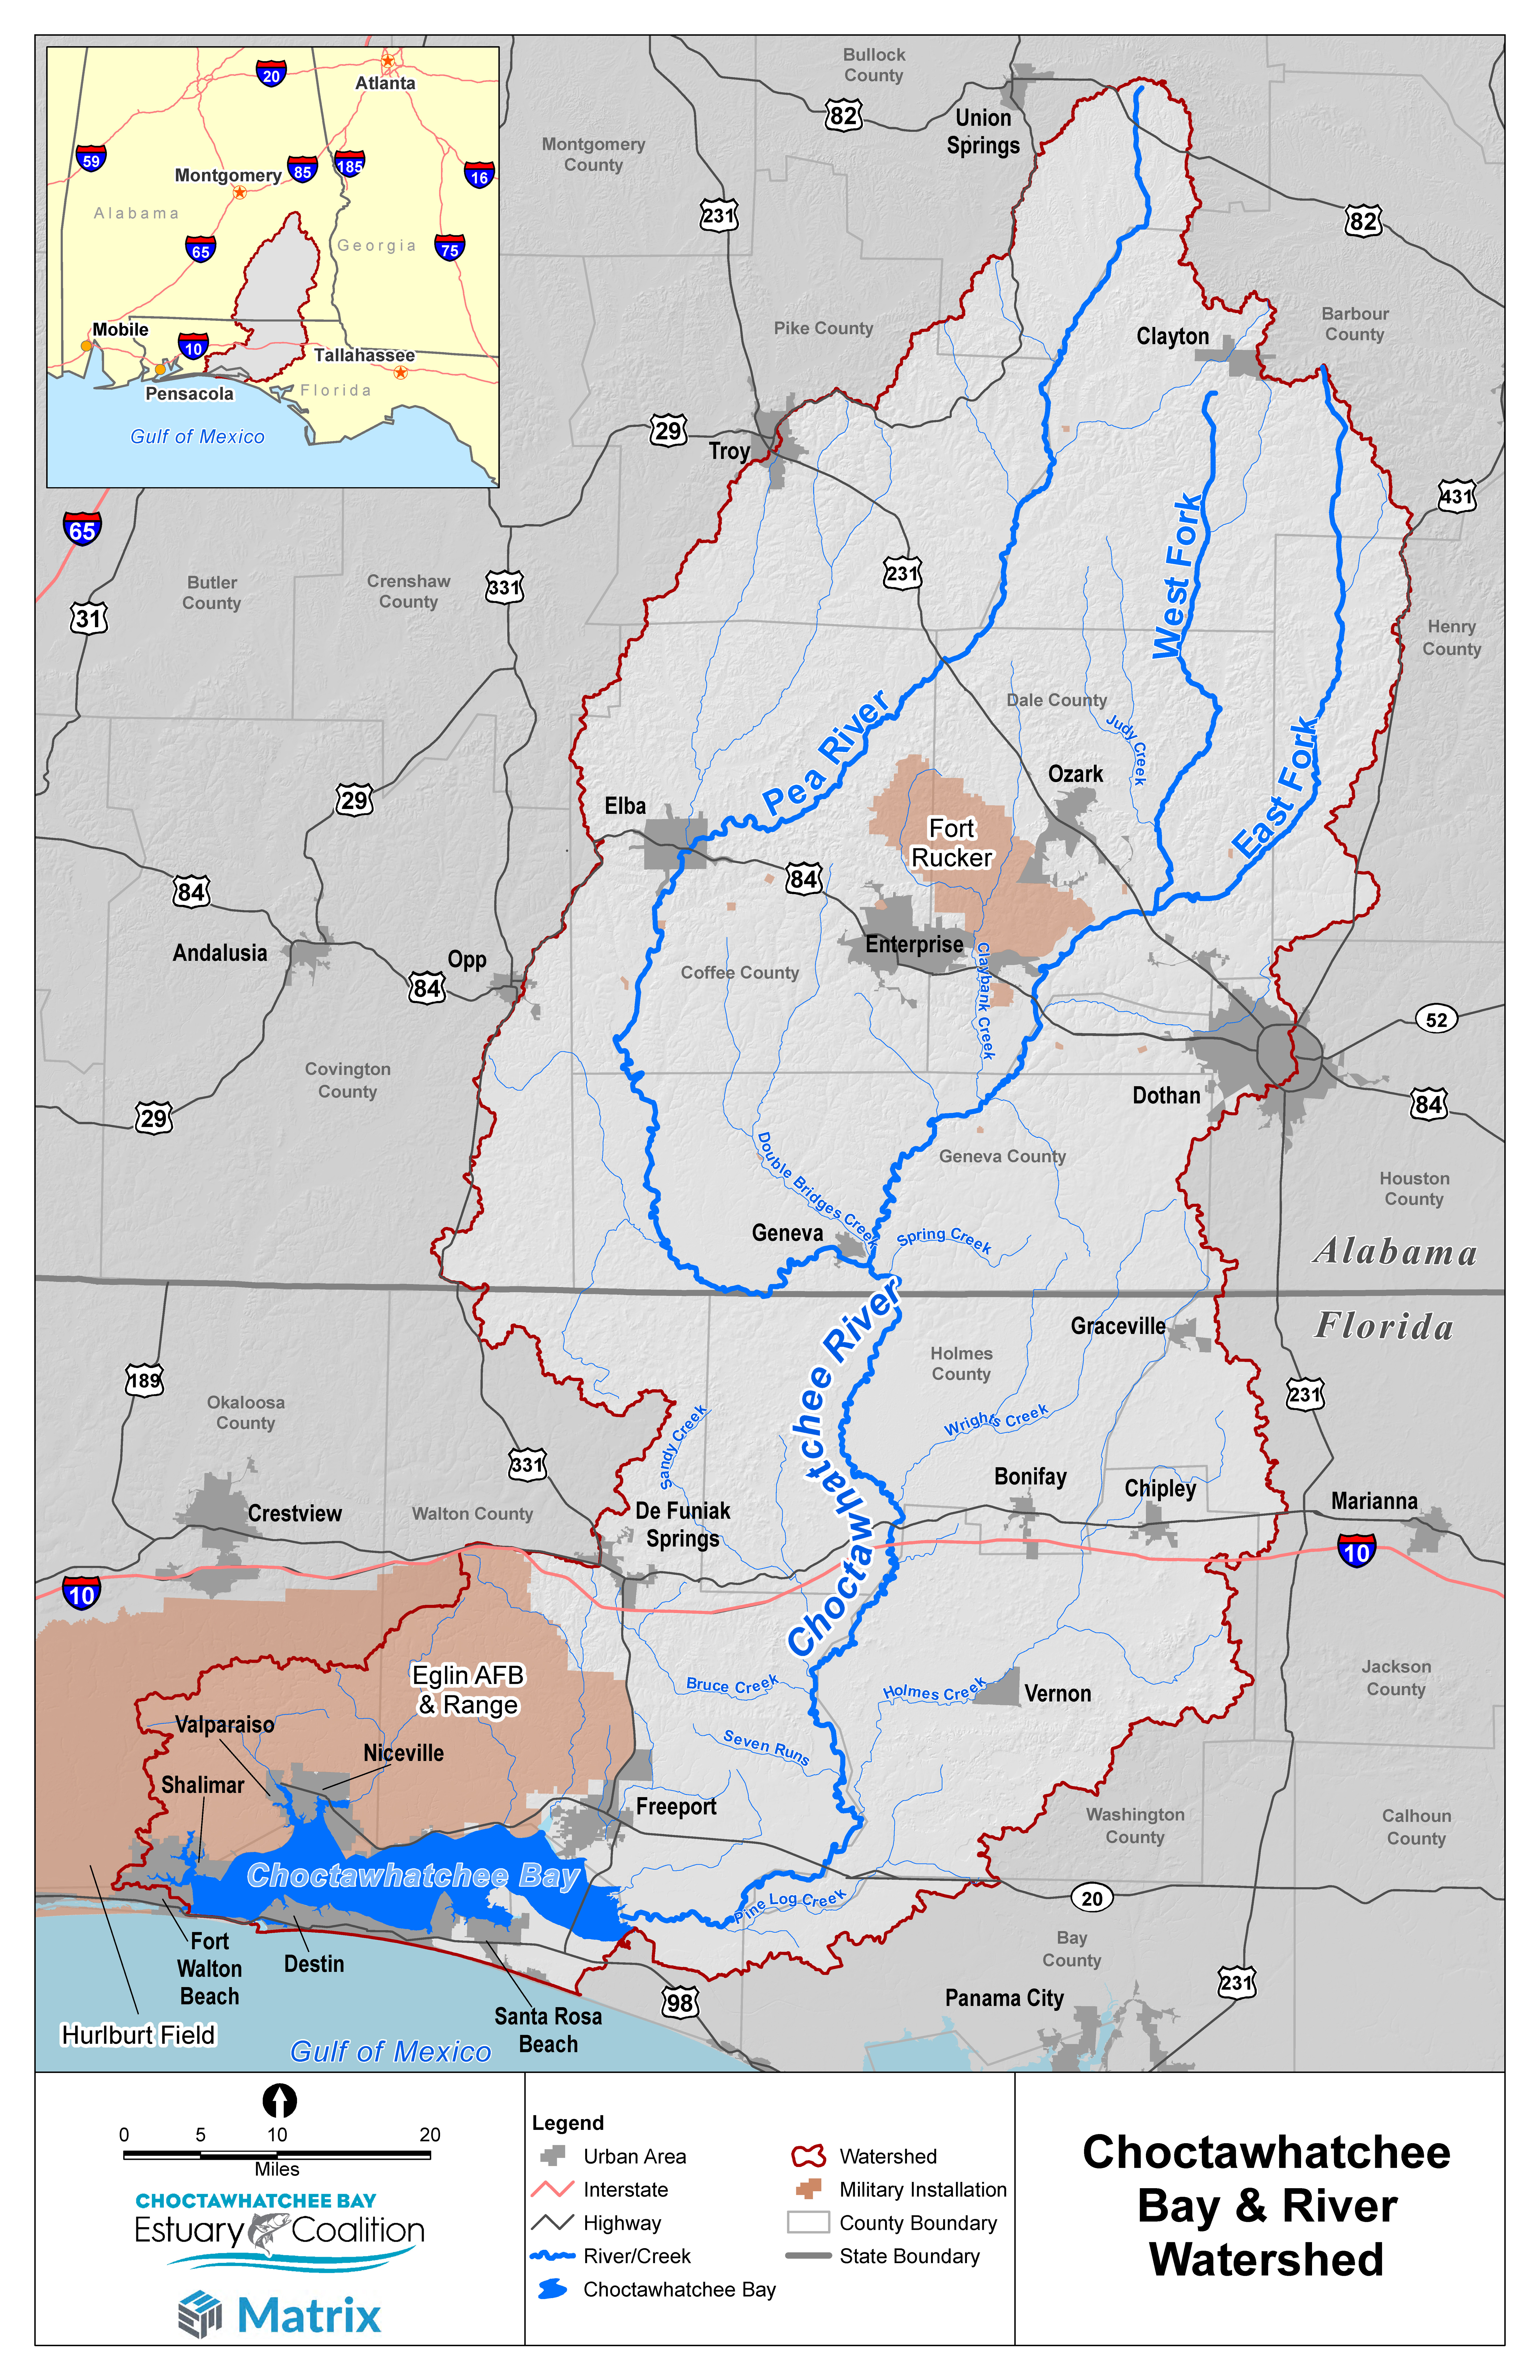 Photo Map of Choctawhatchee Bay and River Watershed